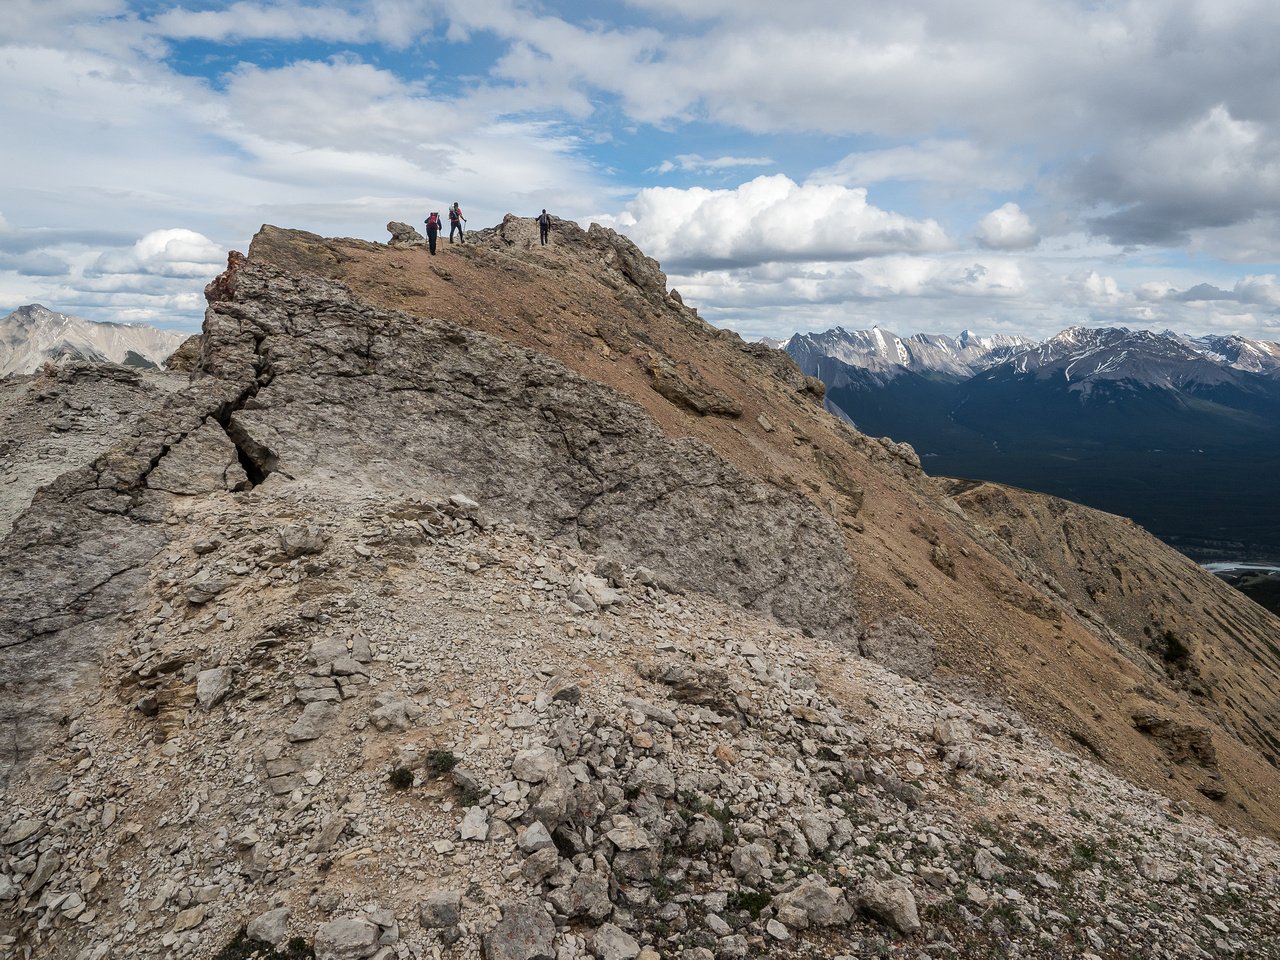 Easy scrambling towards Tuff Puff. If you hike Tuff Puff, you should continue a ways up the ridge beyond for more fun and even better views.